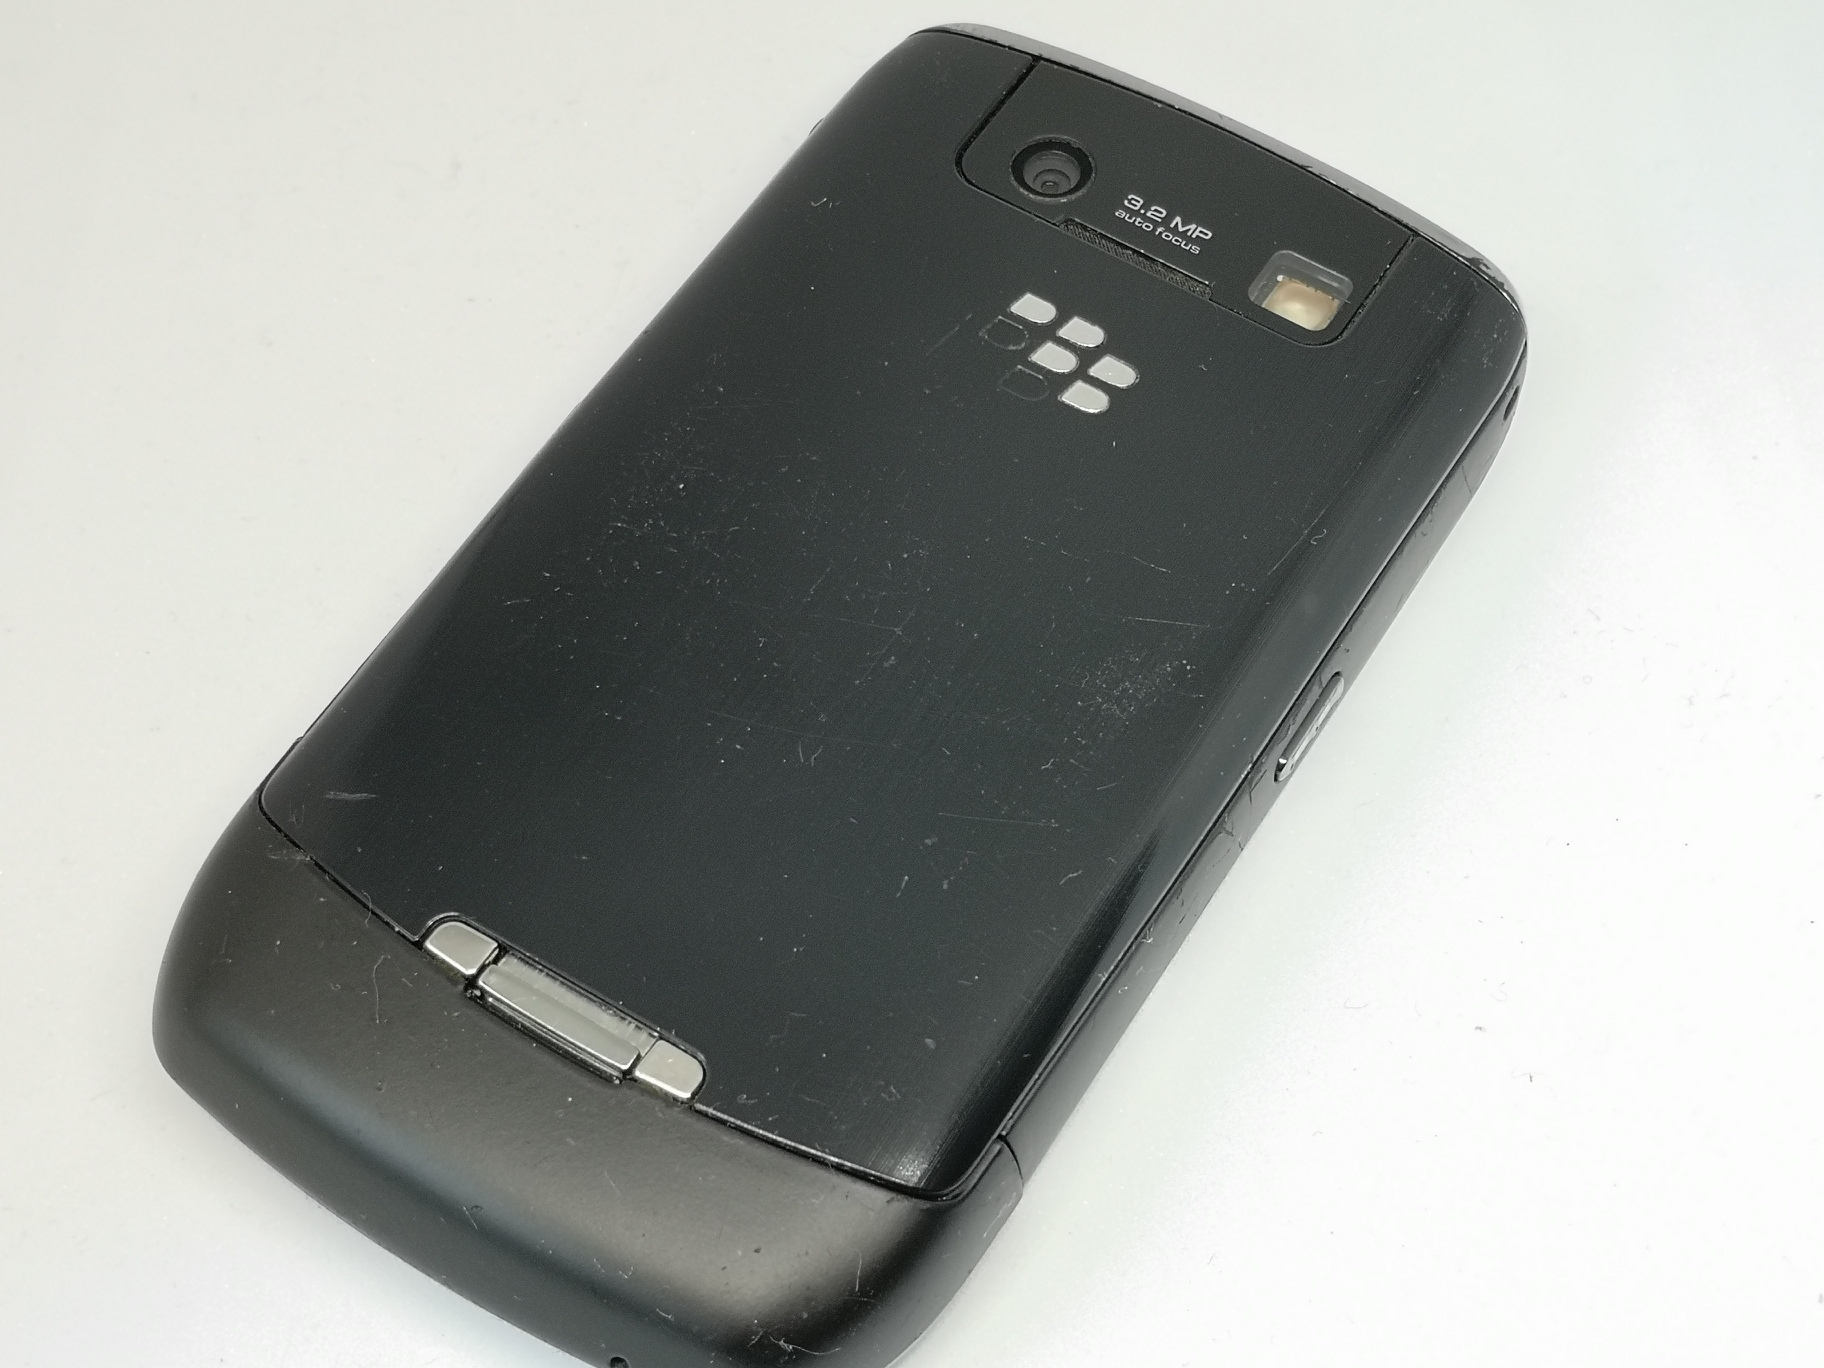 Blackberry Curve 8900 Review - Classy Business Handset